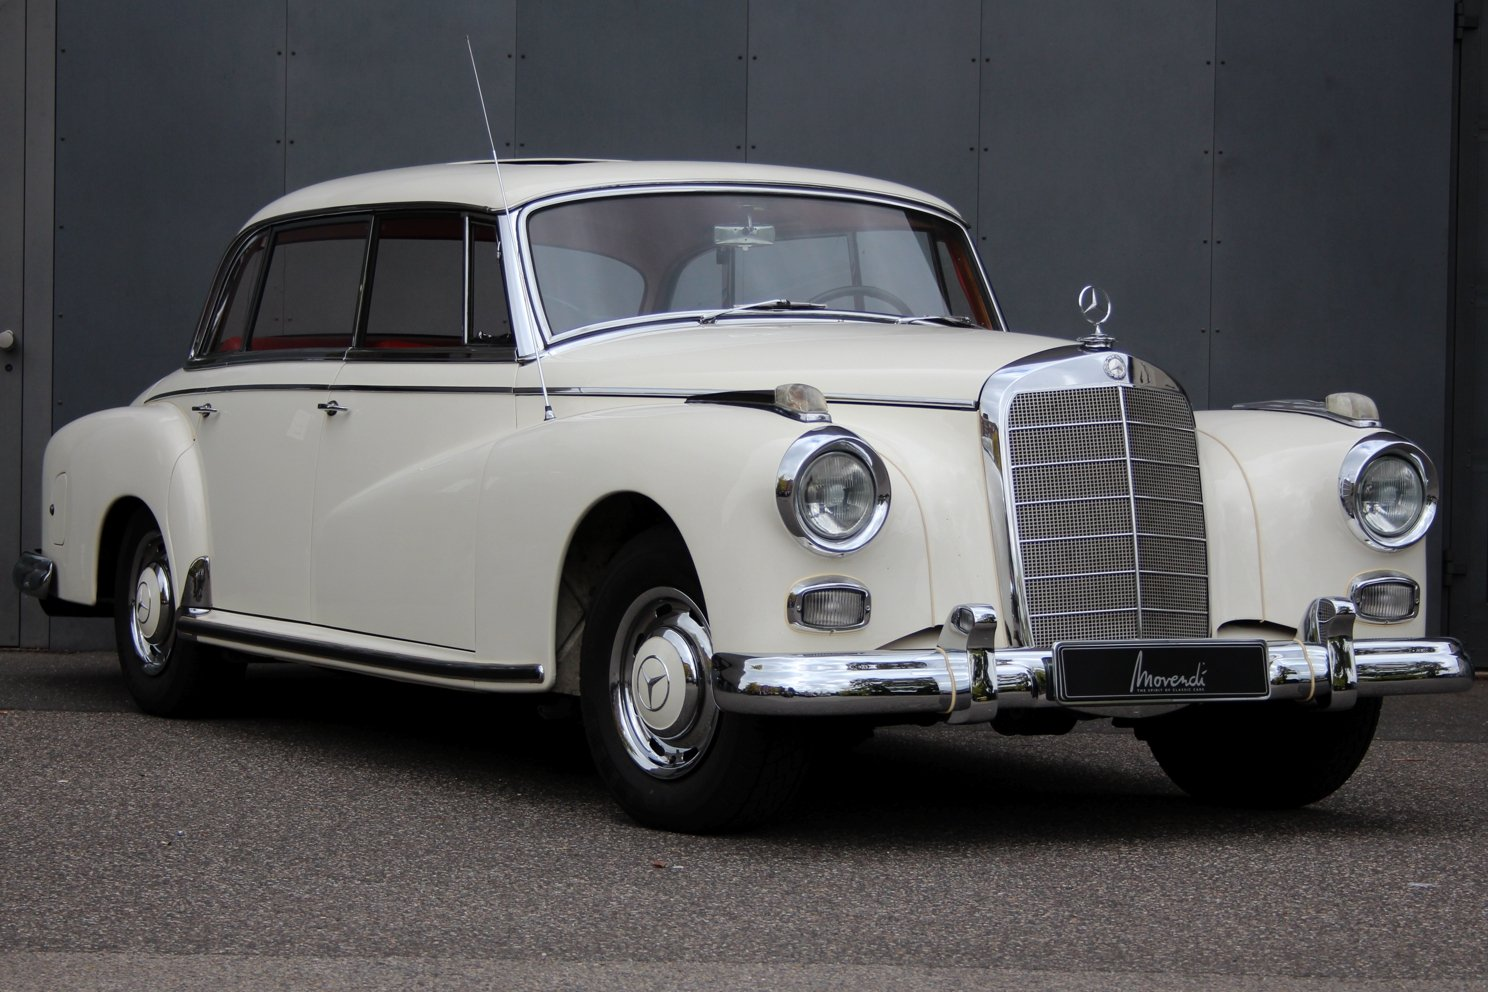 1958 Mercedes-Benz Typ 300 D - Adenauer - Automatic LHD For Sale (picture 1 of 6)